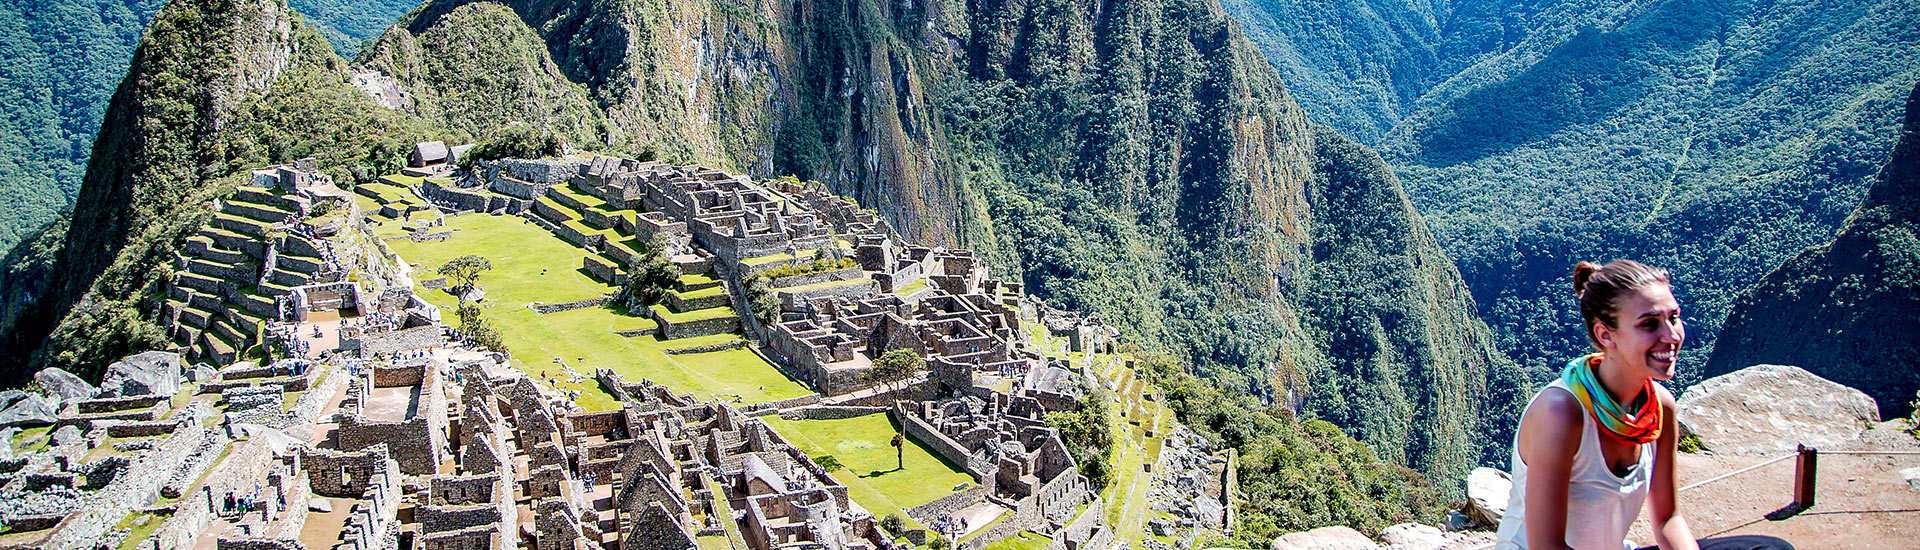 Machu picchu by train packages